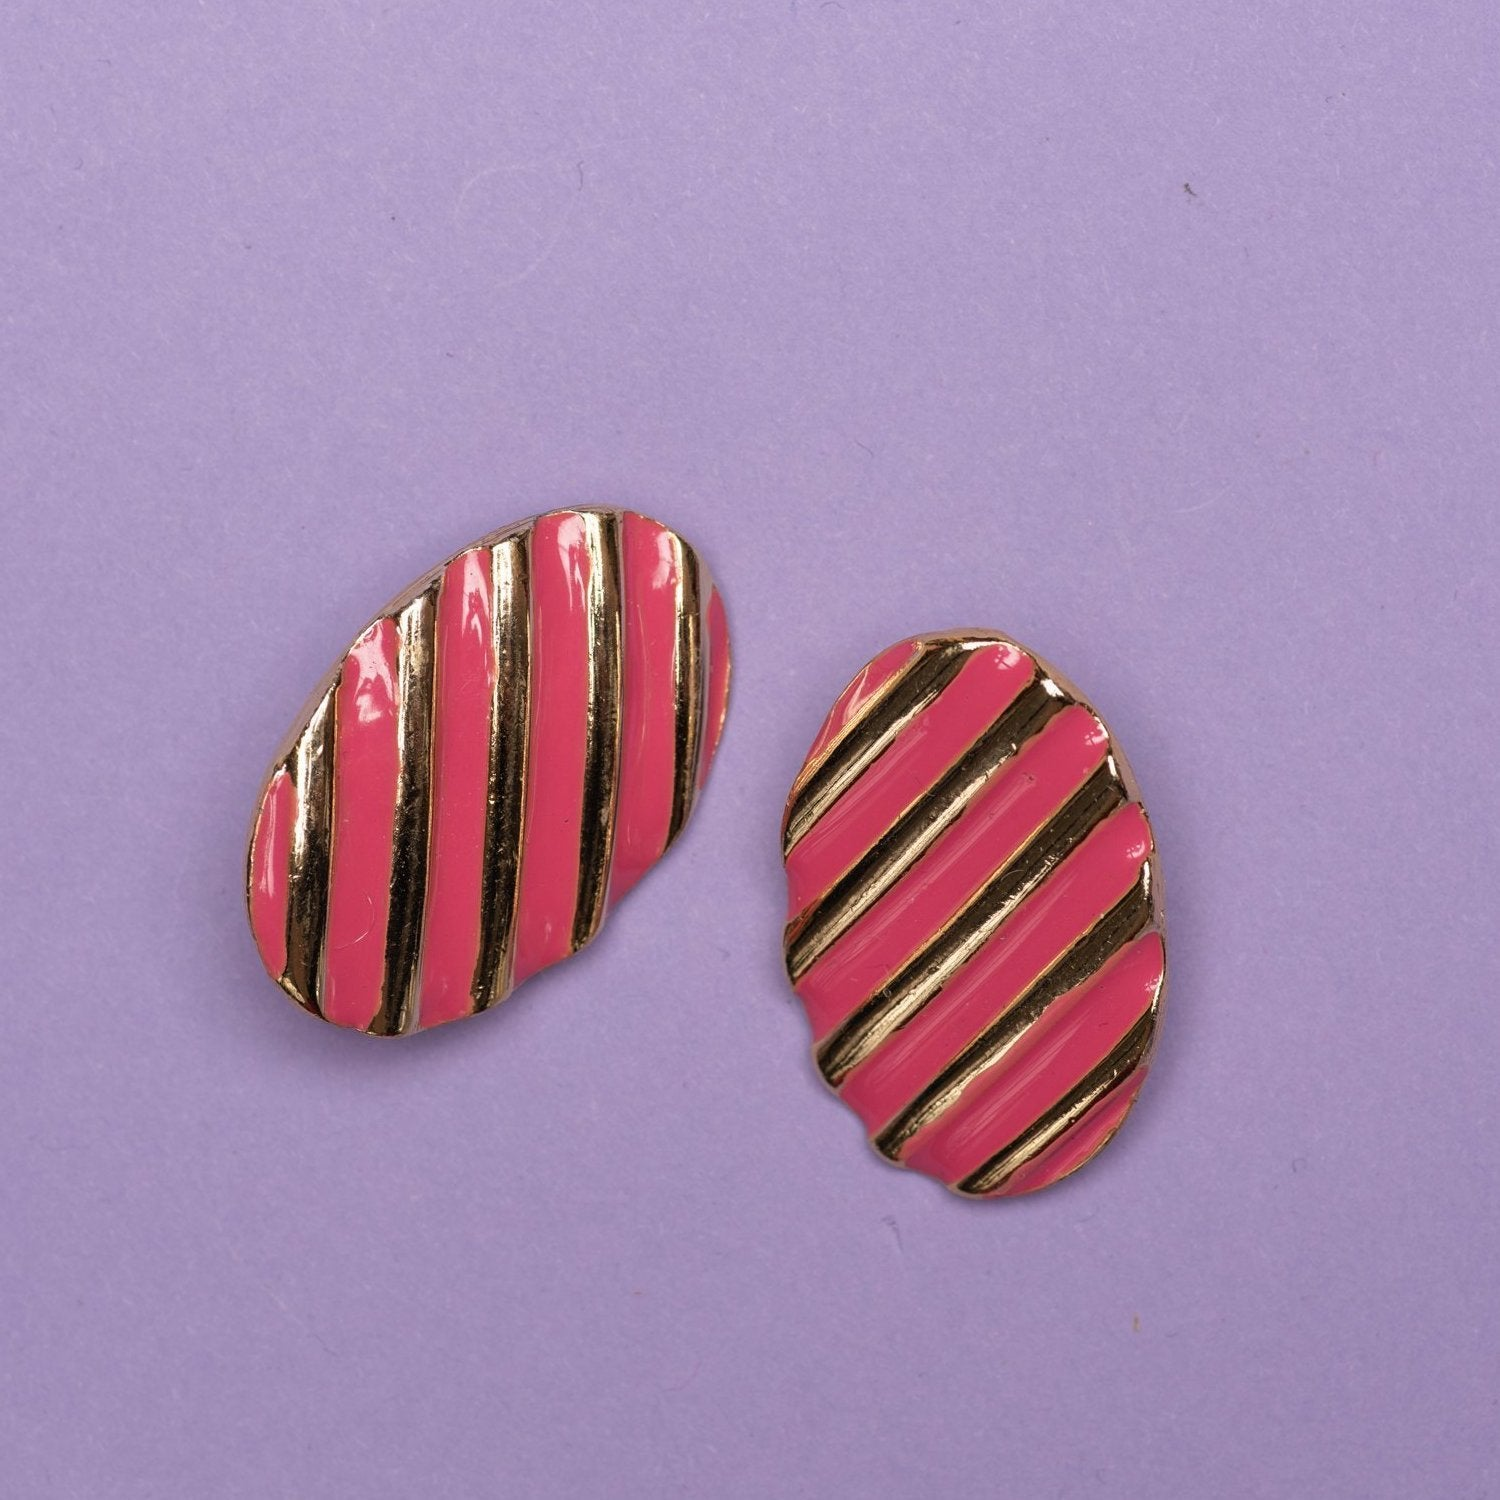 Vintage Gold + Pink Striped Oval Earrings - Closed Caption